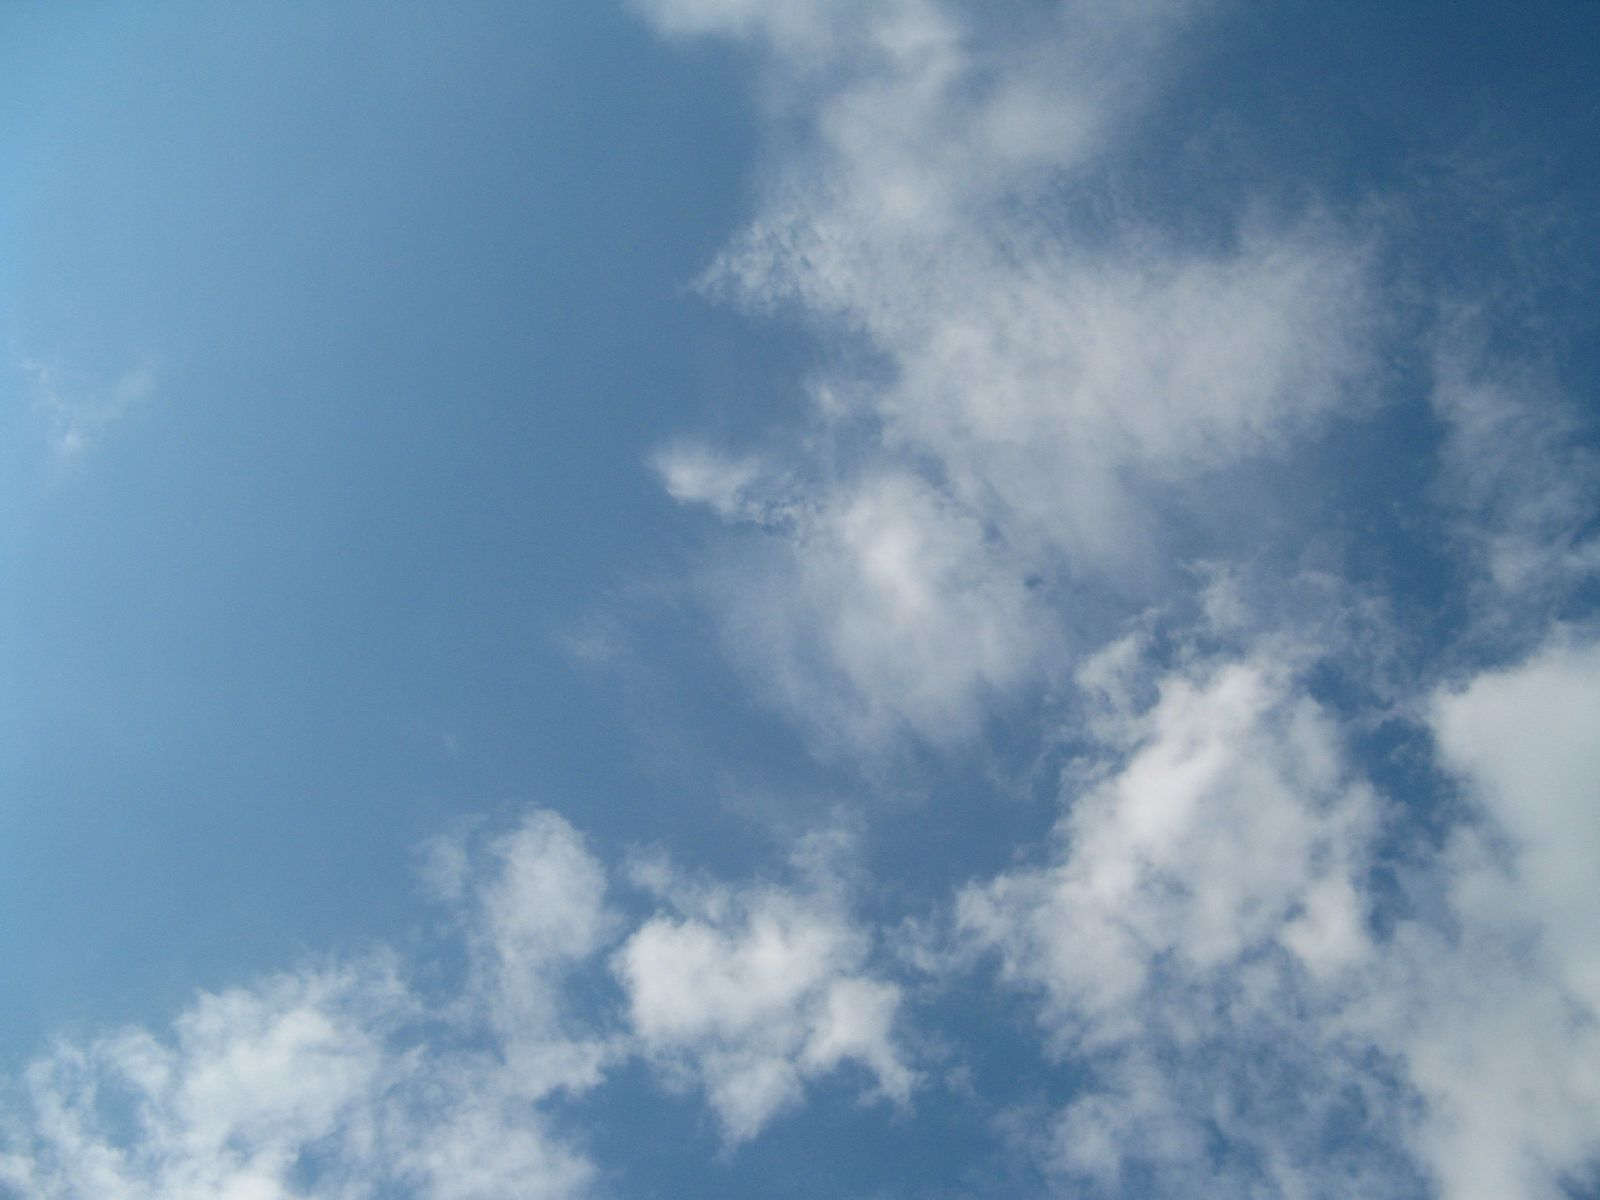 Sky_Clouds_Photo_Texture_B_2620